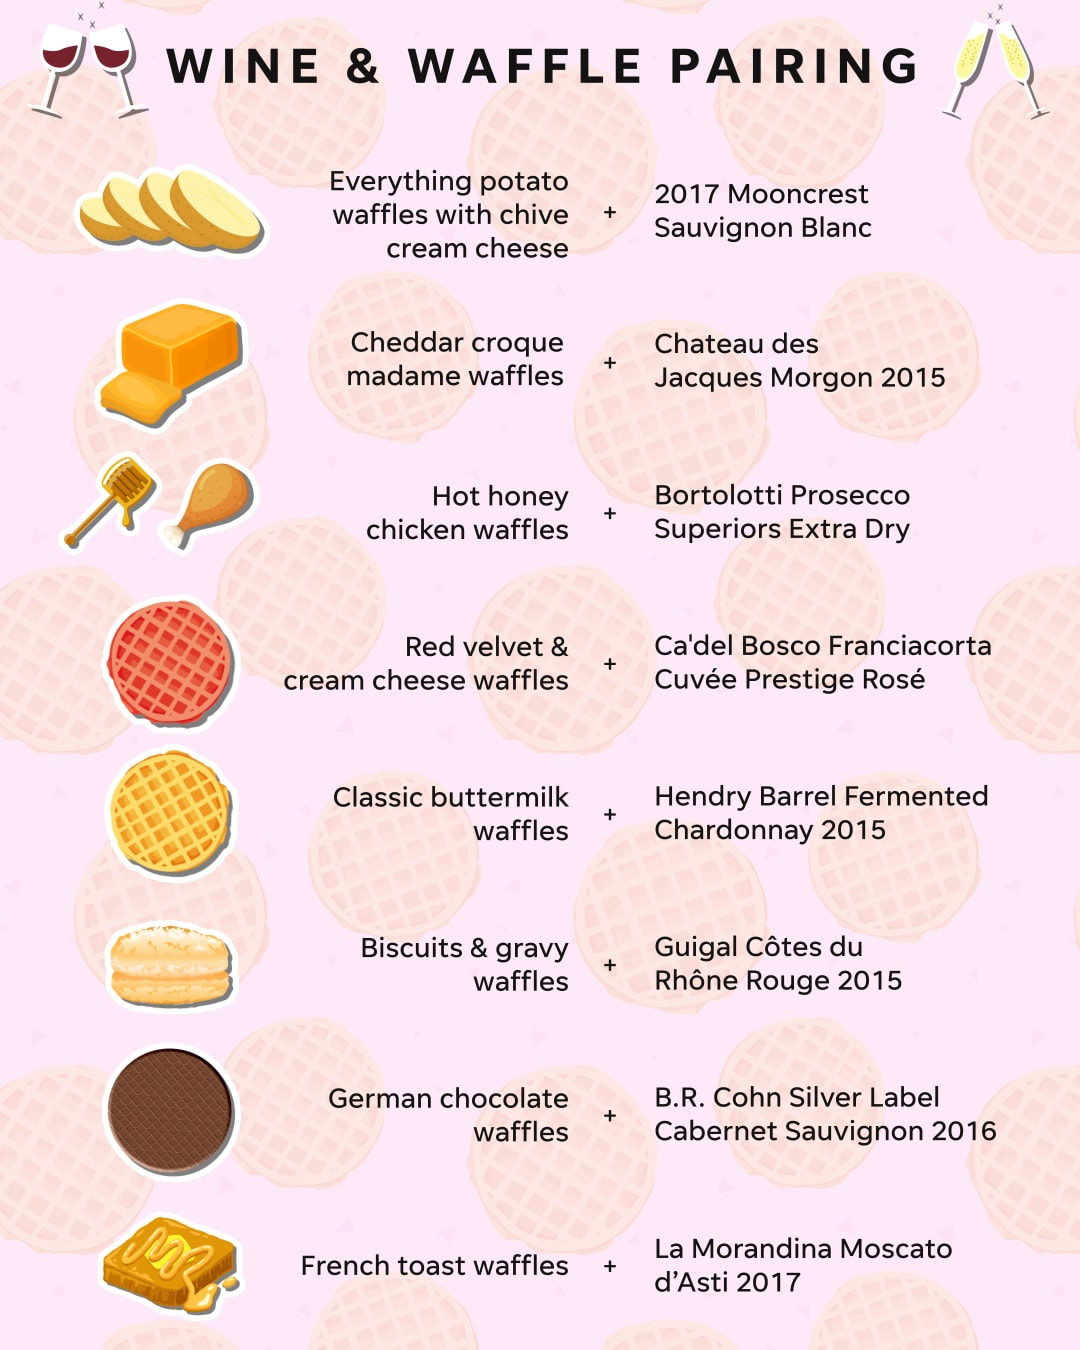 Waffles and Wine Pairing Infographic